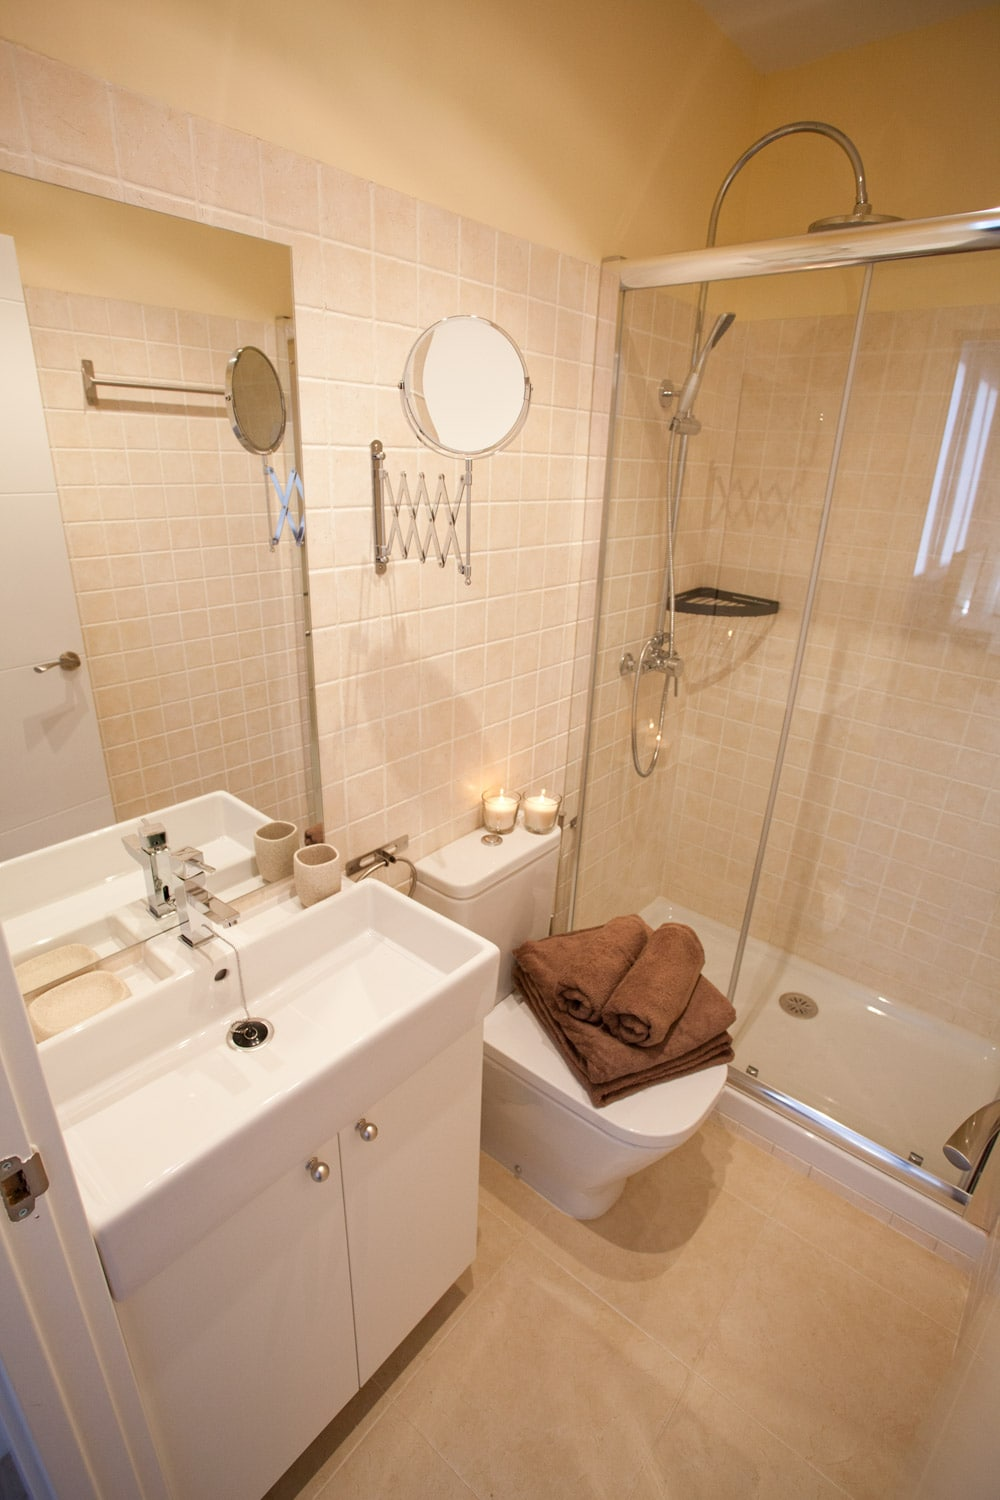 Recent Refurbished BATHROOM , with all amenities and brand new Shower!